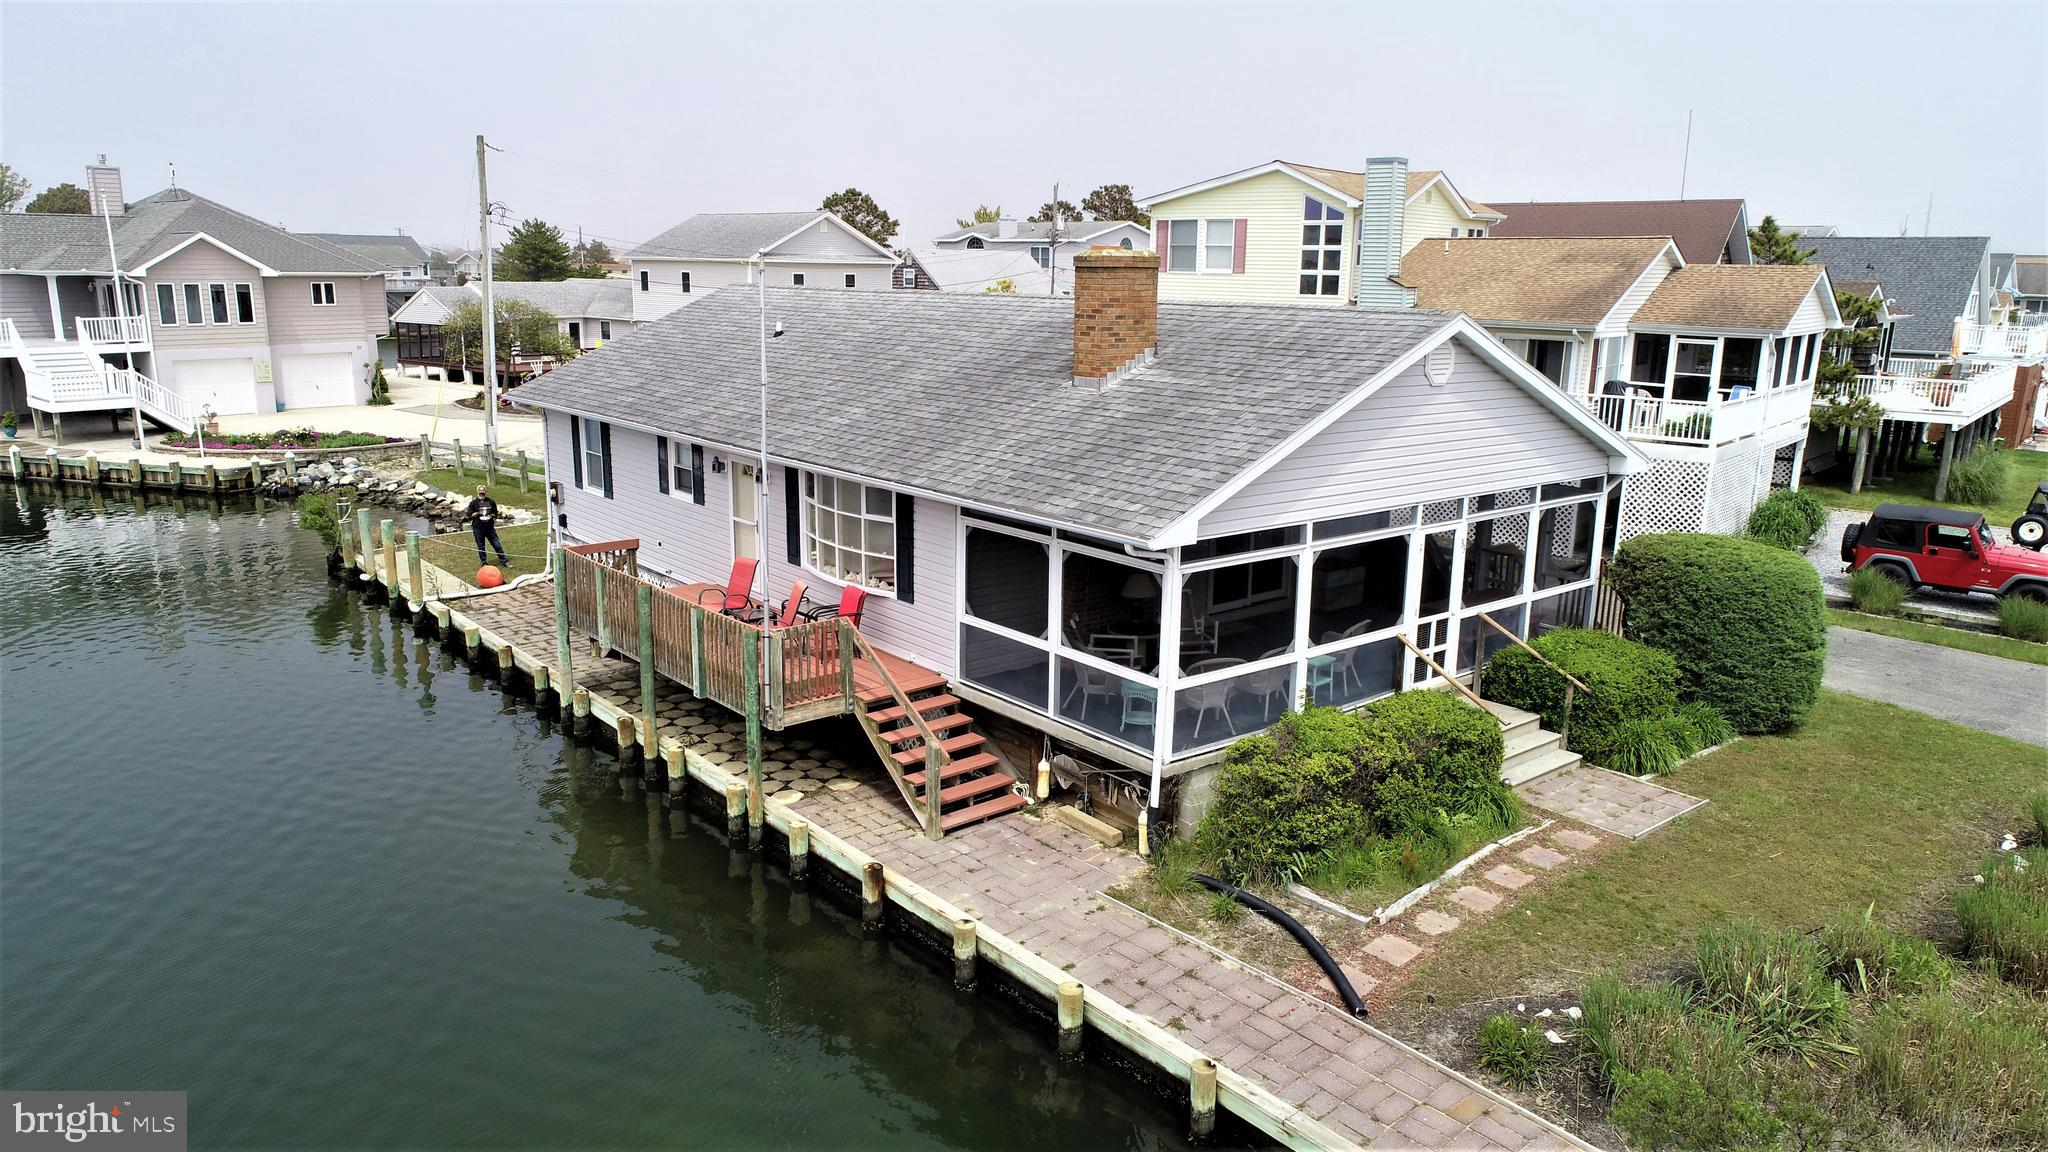 Excellent location with 100' of direct water frontage, fully bulkheaded. Three br. and 2 ba. with open side deck and a huge screen porch.  This home has never been a rental and has had only 1 owner. Short walk to the lifeguarded beach in Fenwick Island. Extra wide water way that should be suitable for a boat lift if needed.  Easy to show.